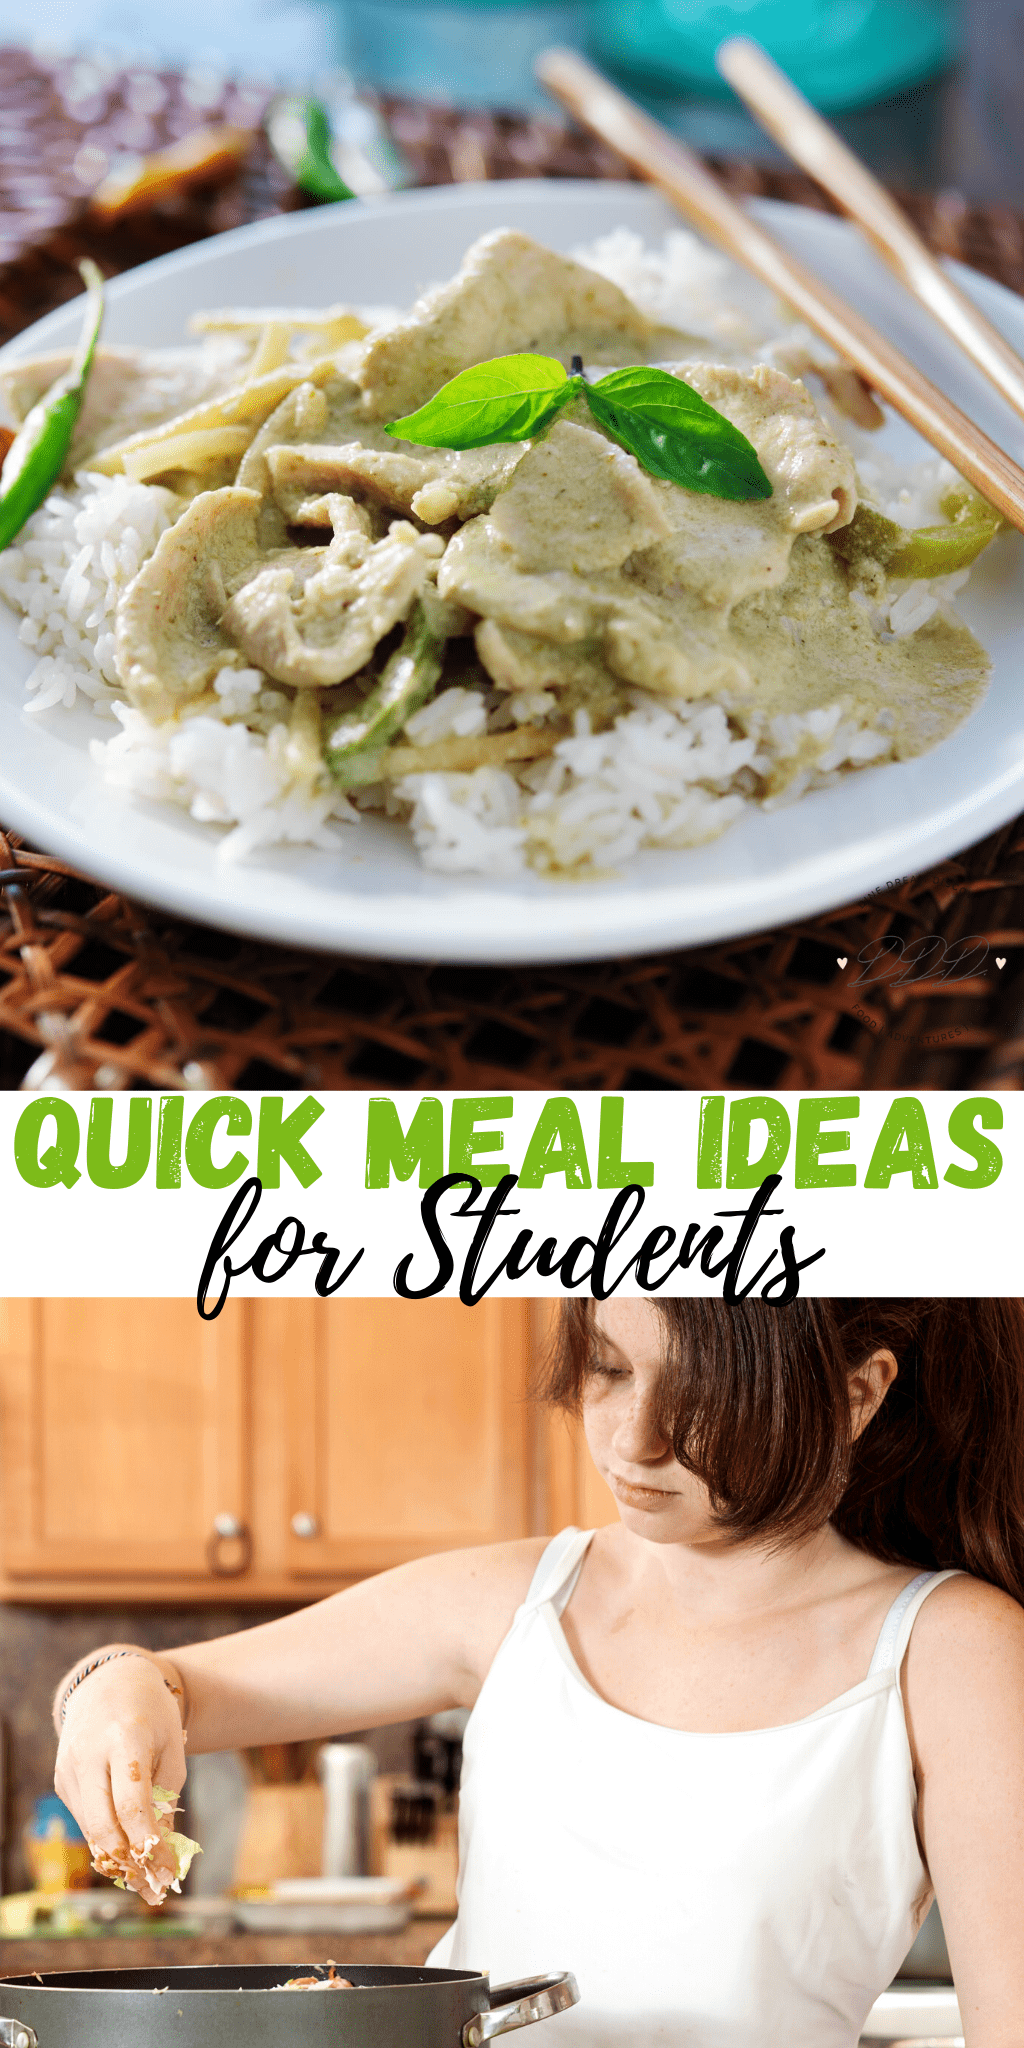 Simple & Quick Meal Ideas for Students